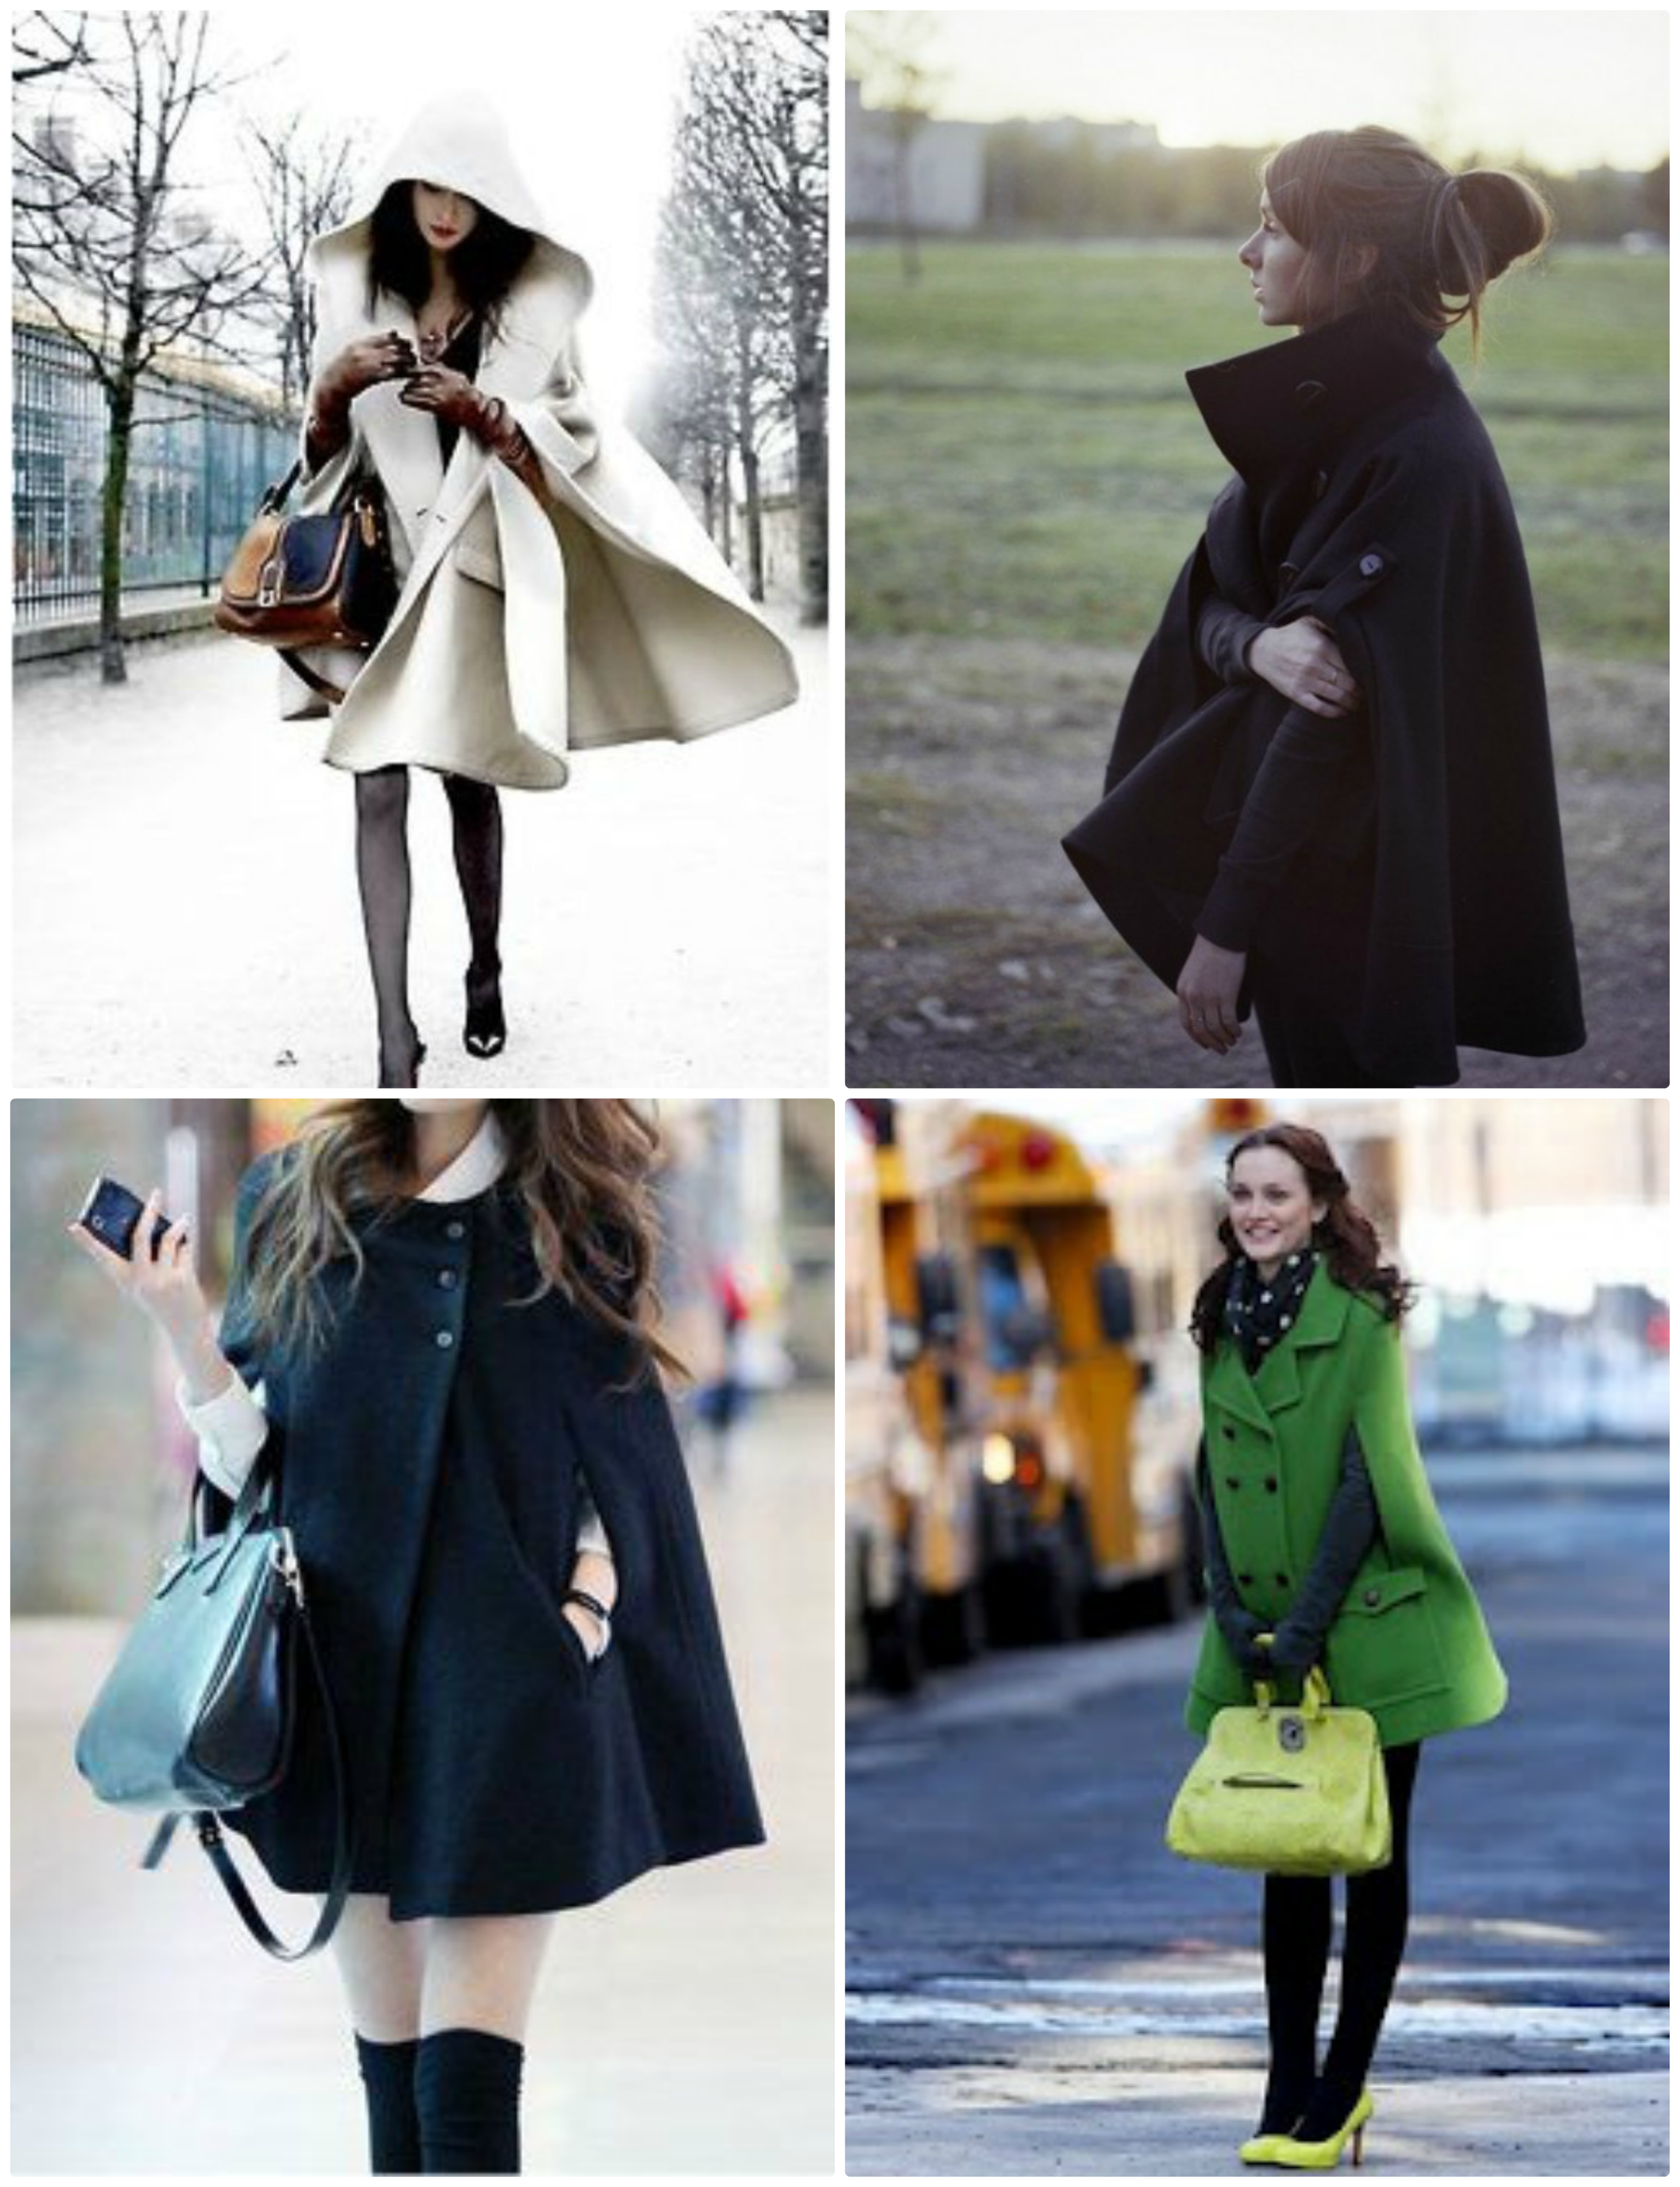 Cape coats of wonder. From L to R: 1, 2, 3, 4